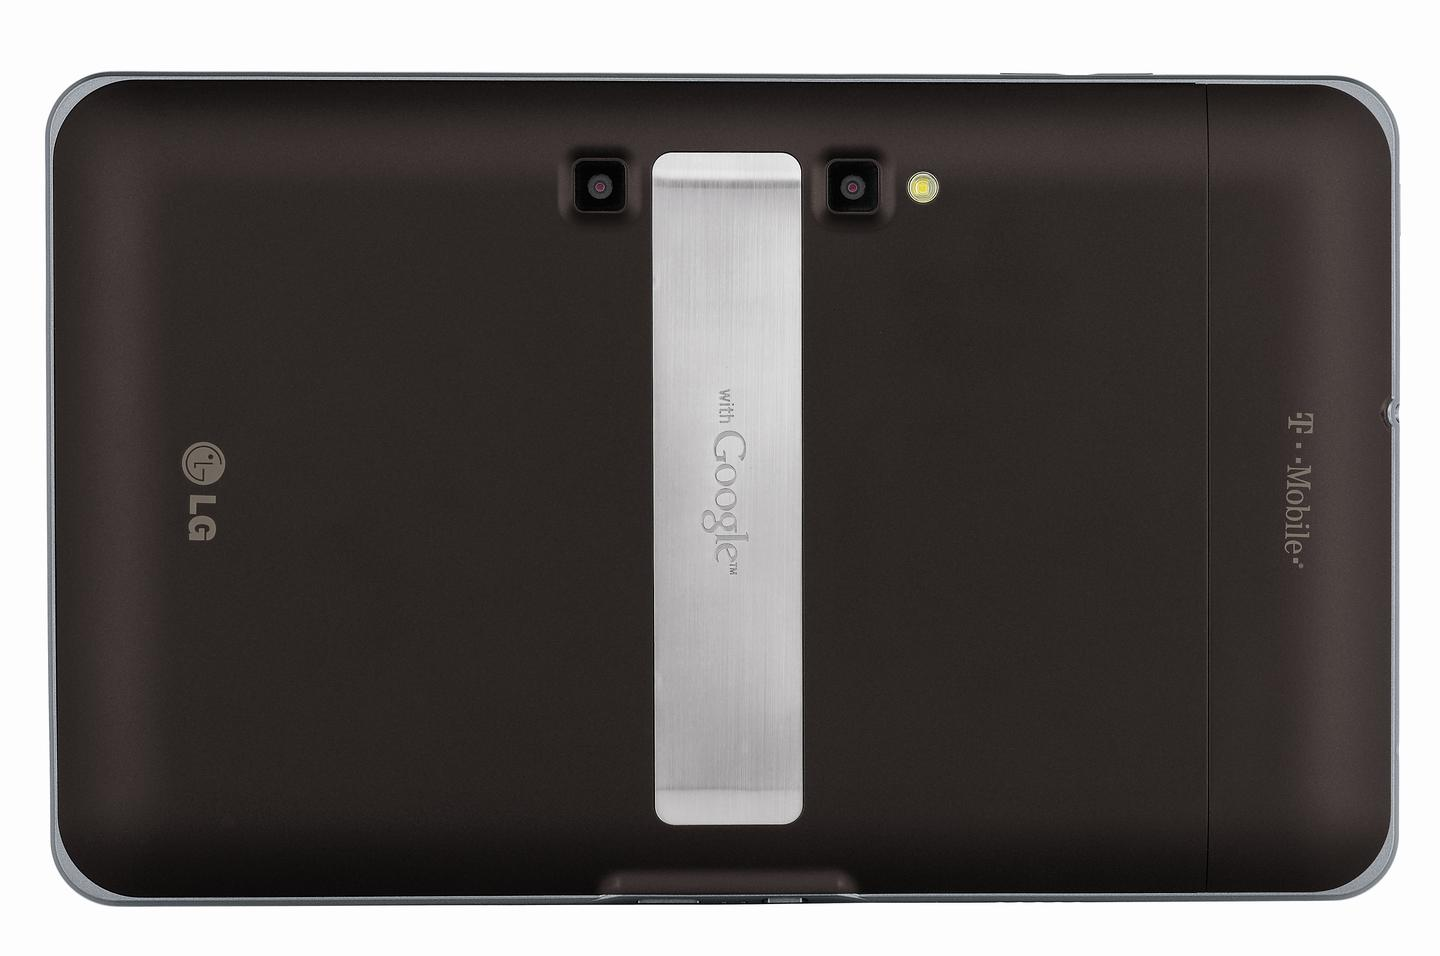 The rear-facing camera is a full 1080p stereoscopic camera that also snaps 5 megapixel images and benefits from an LED flash